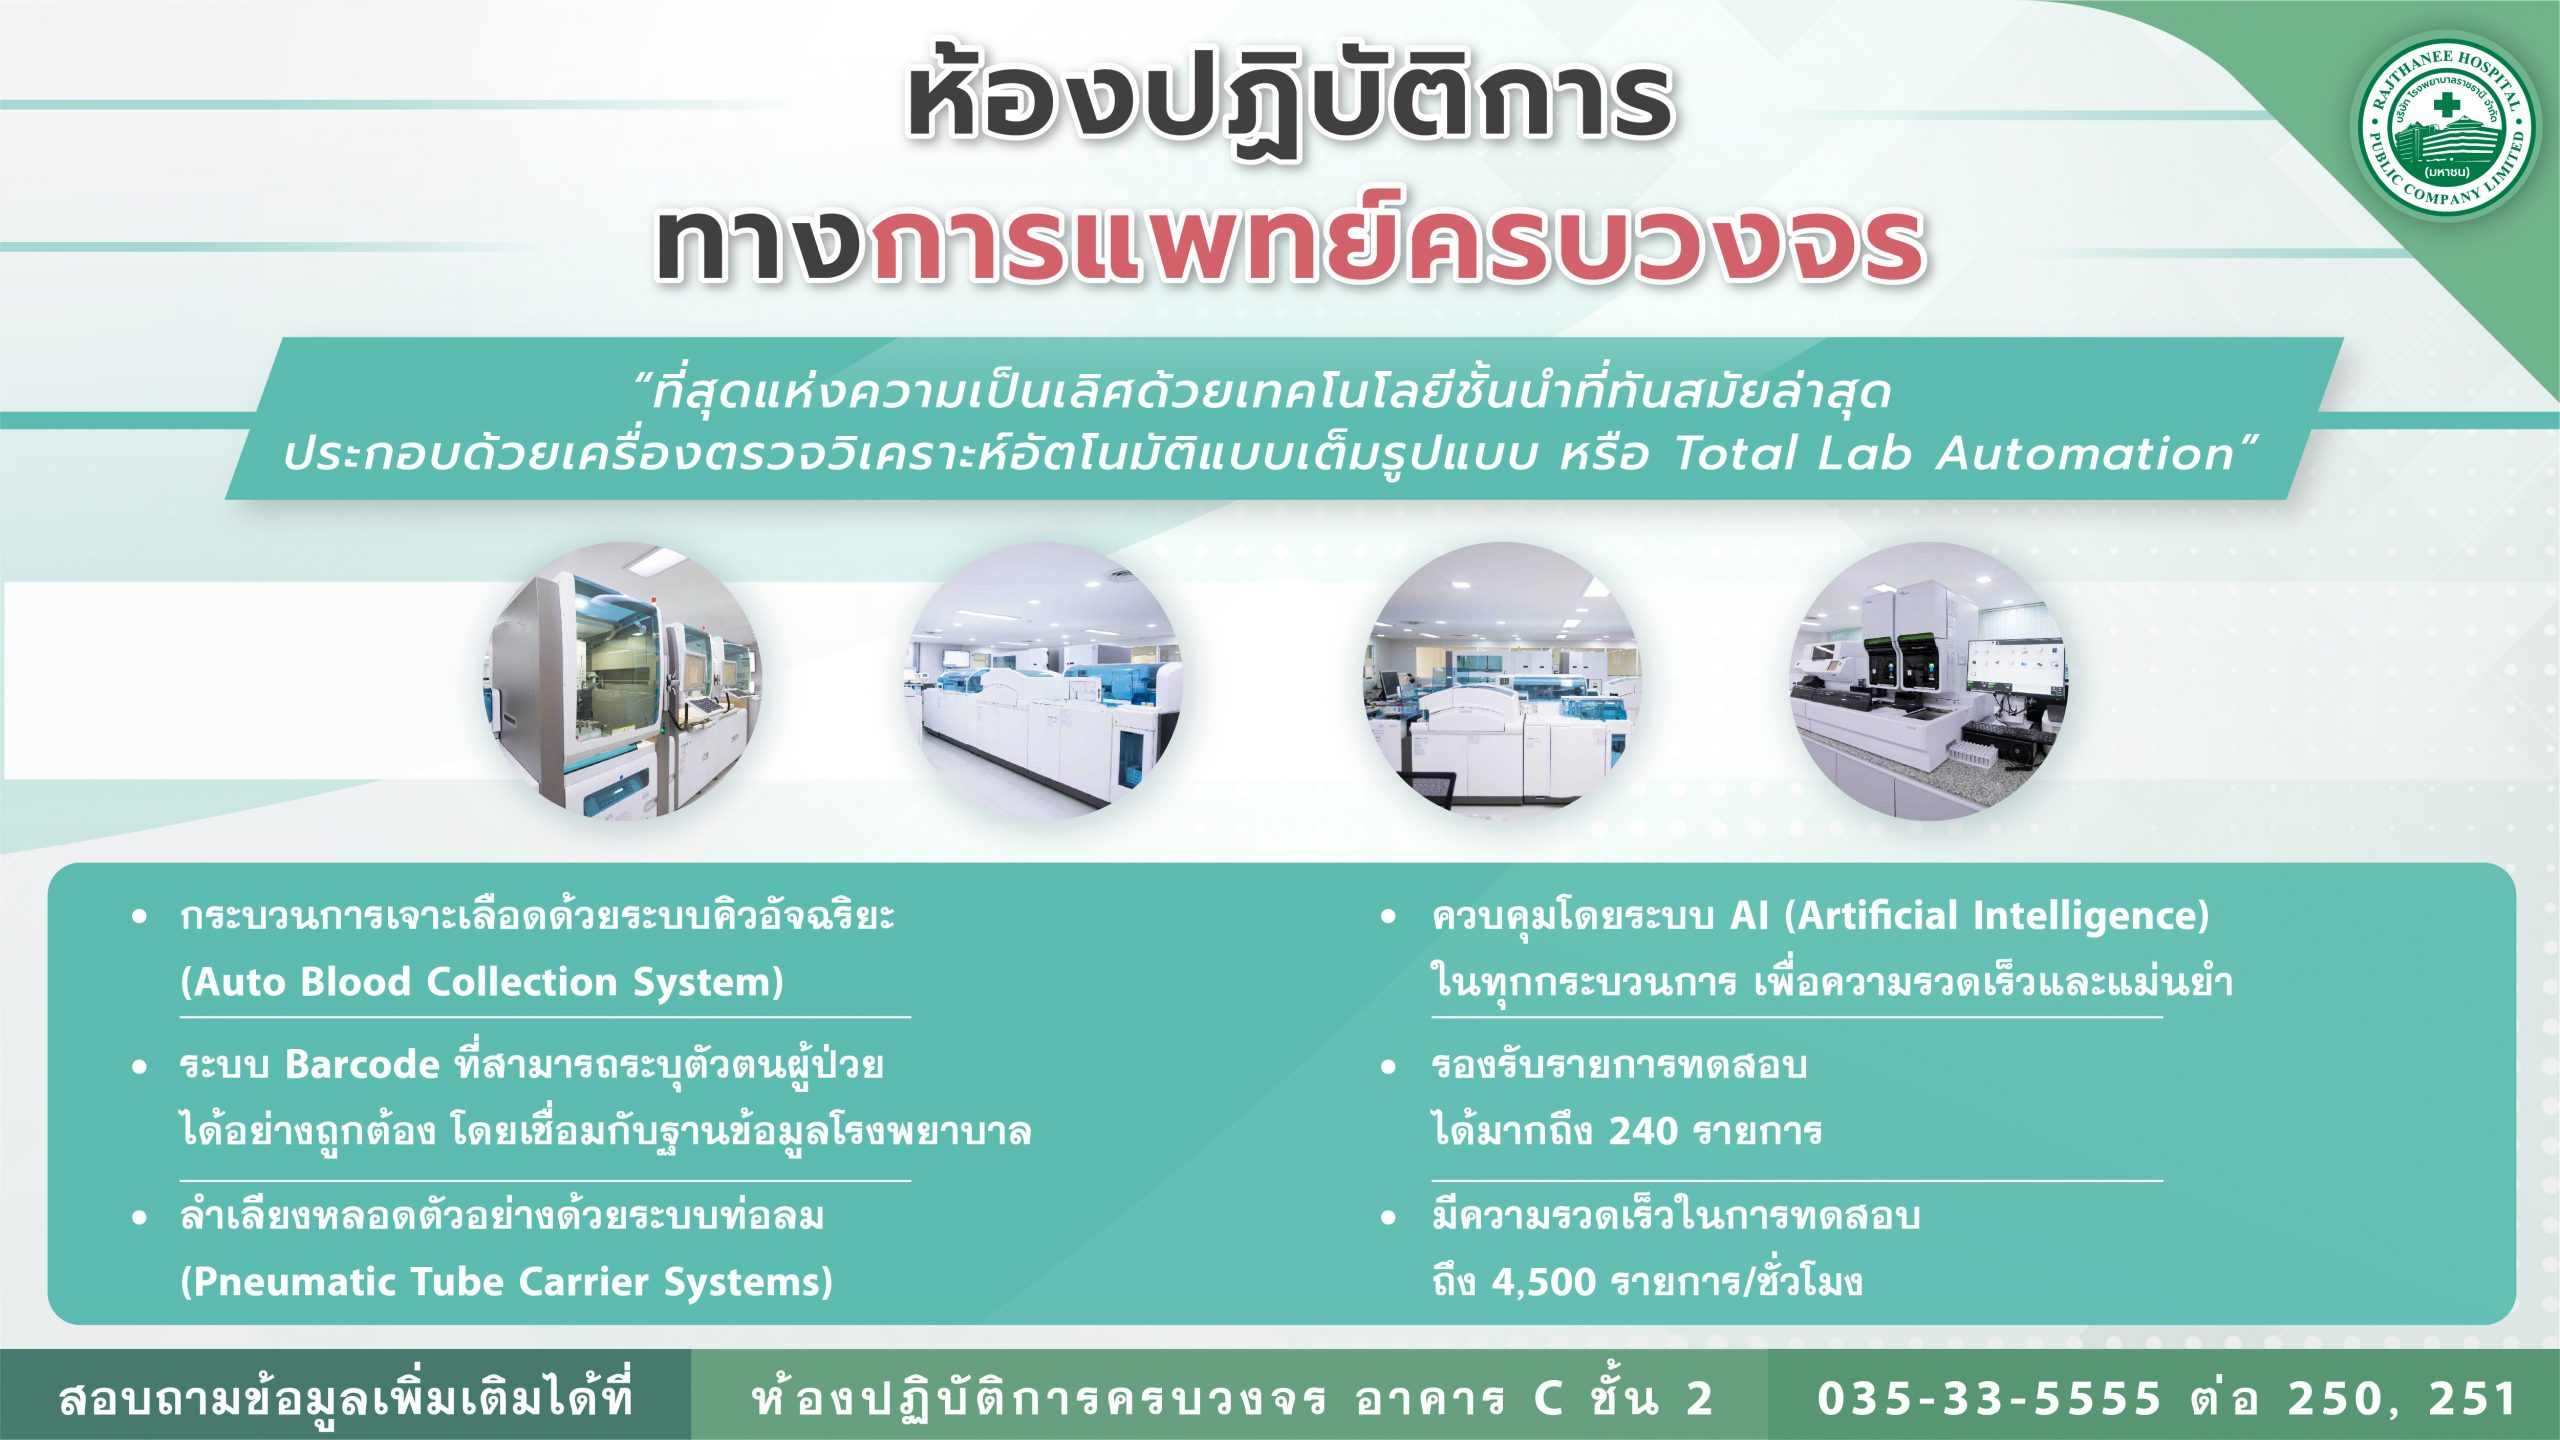 Total Lab Automation